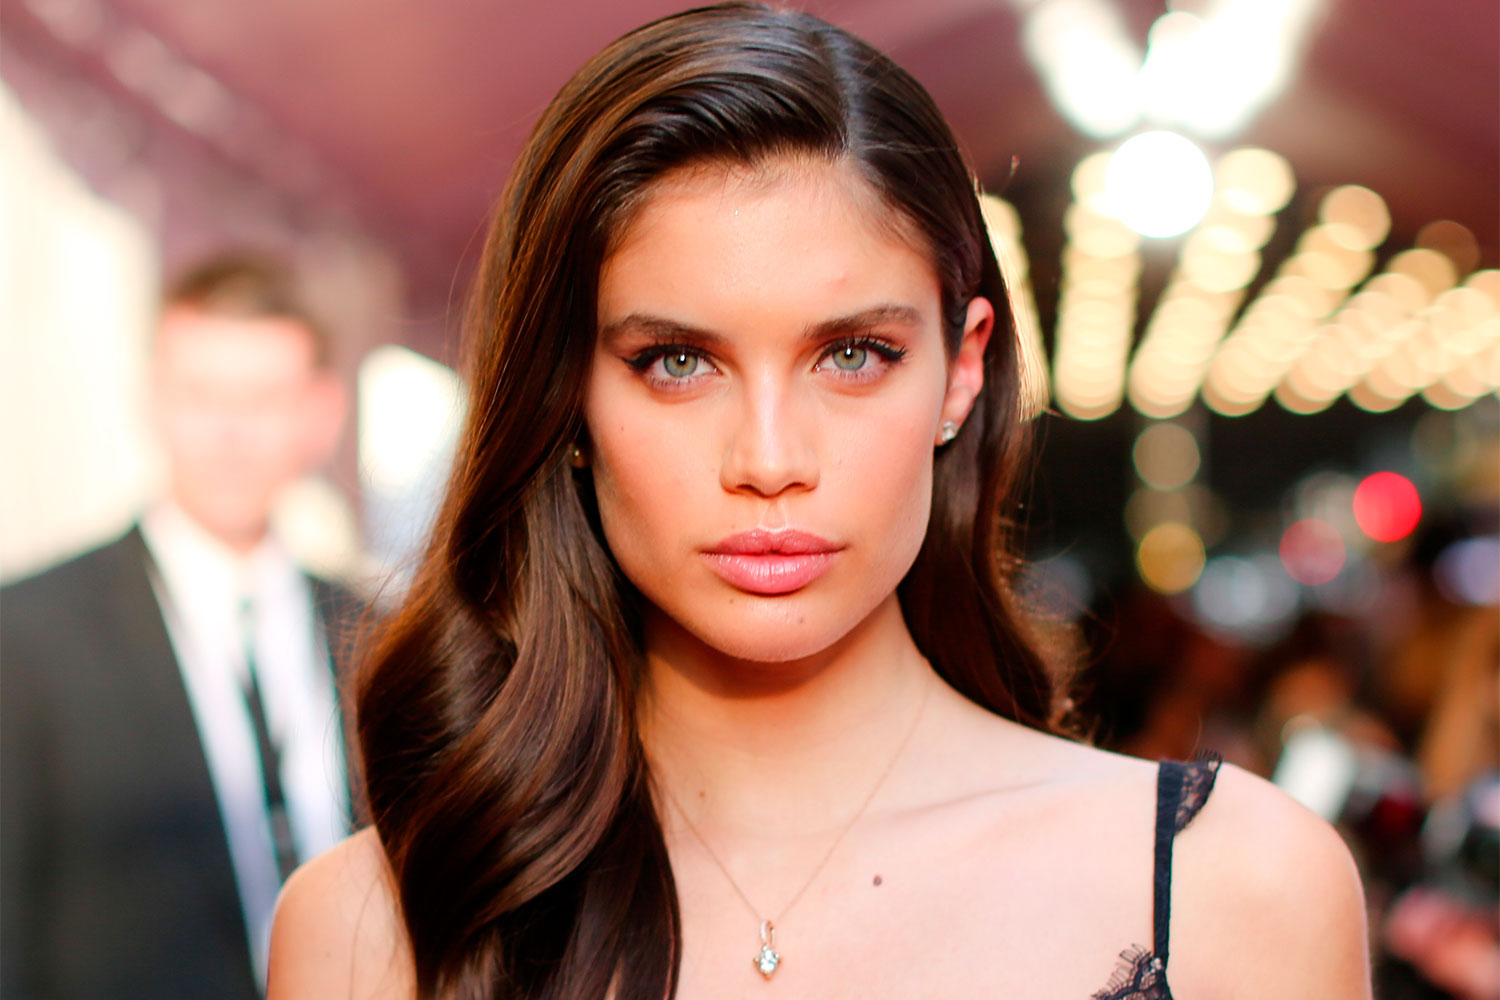 Sara Sampaio has a powerful message for the paparazzi who violated' her